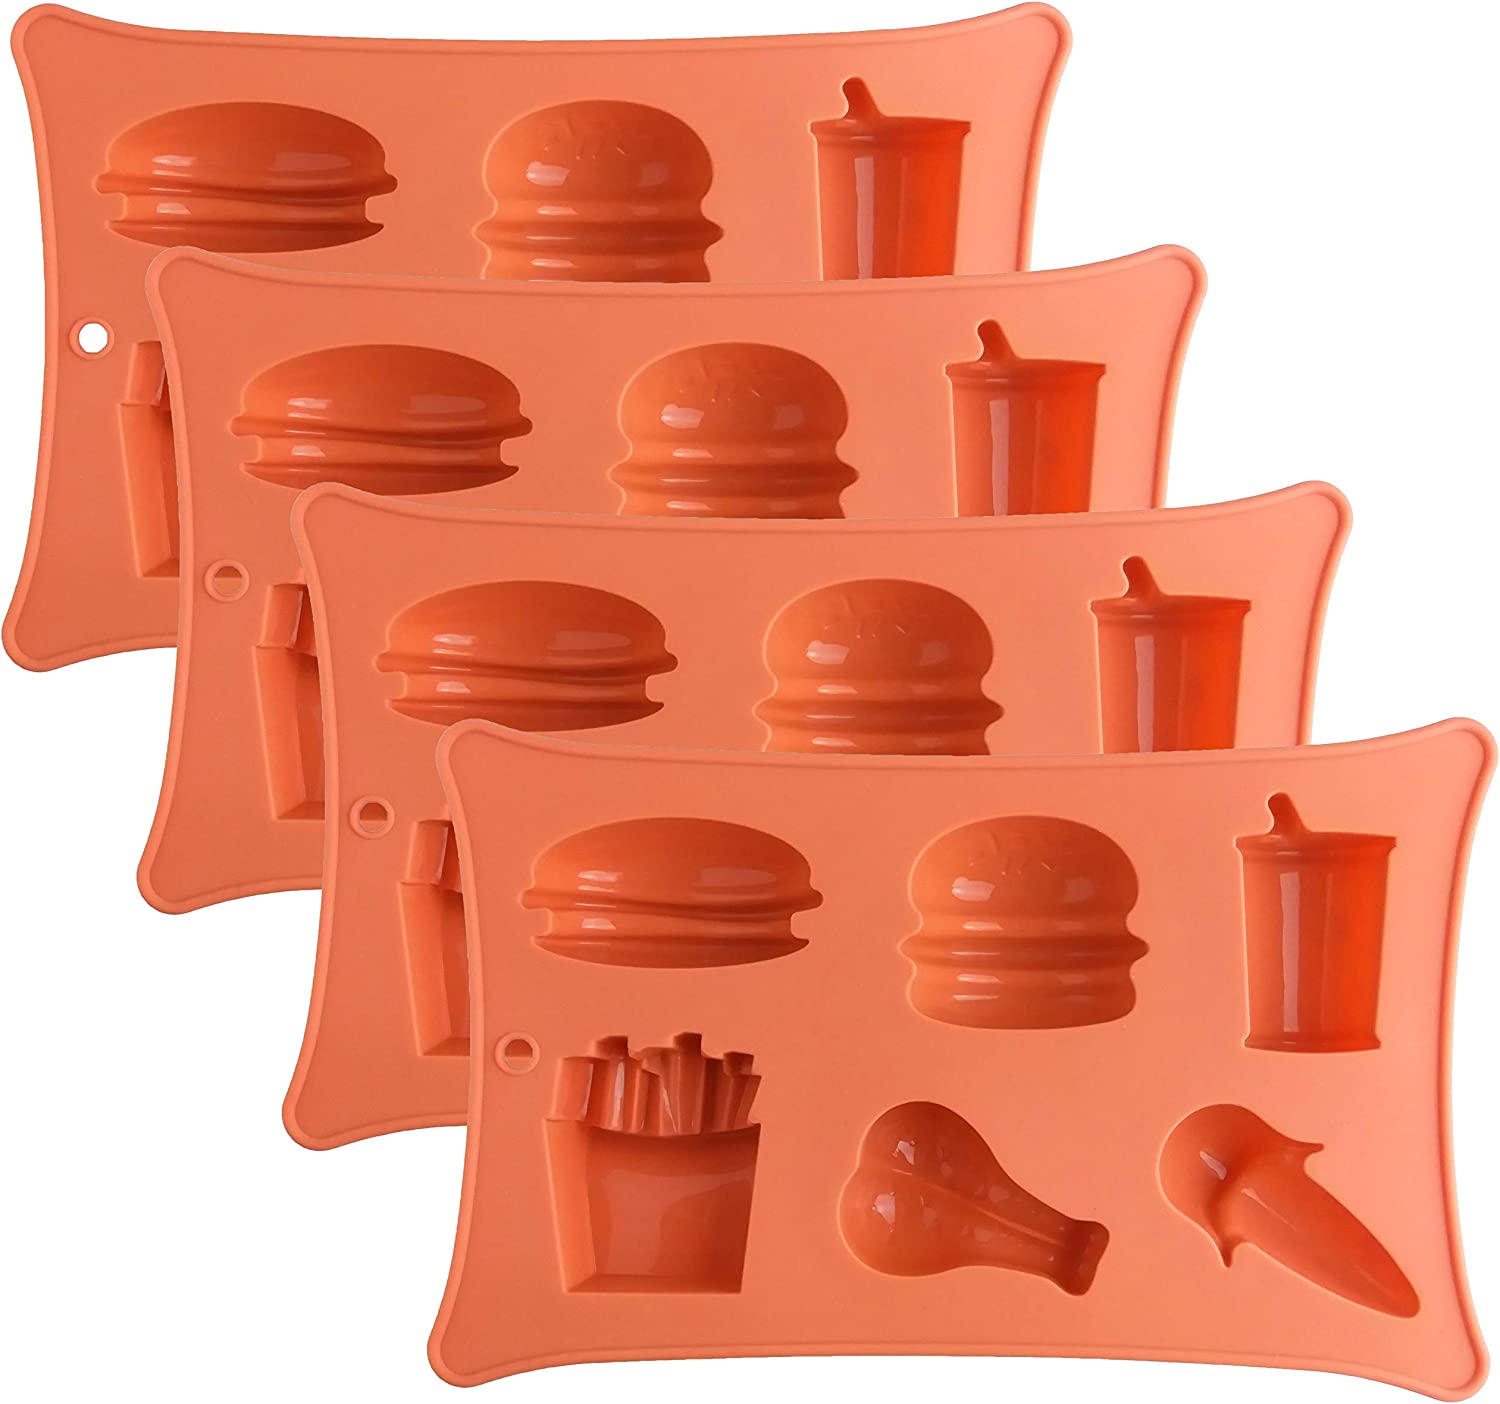 Large Sized Silicone Candy Gummy Molds: Silicon Baking Mold for Candy, Chocolate, Keto Fat Bombs, Jello, Ice Cube - Tray with Burger, Hotdog, French Fries, Drinks, Chicken Leg, Ice Cream (Set of 4)